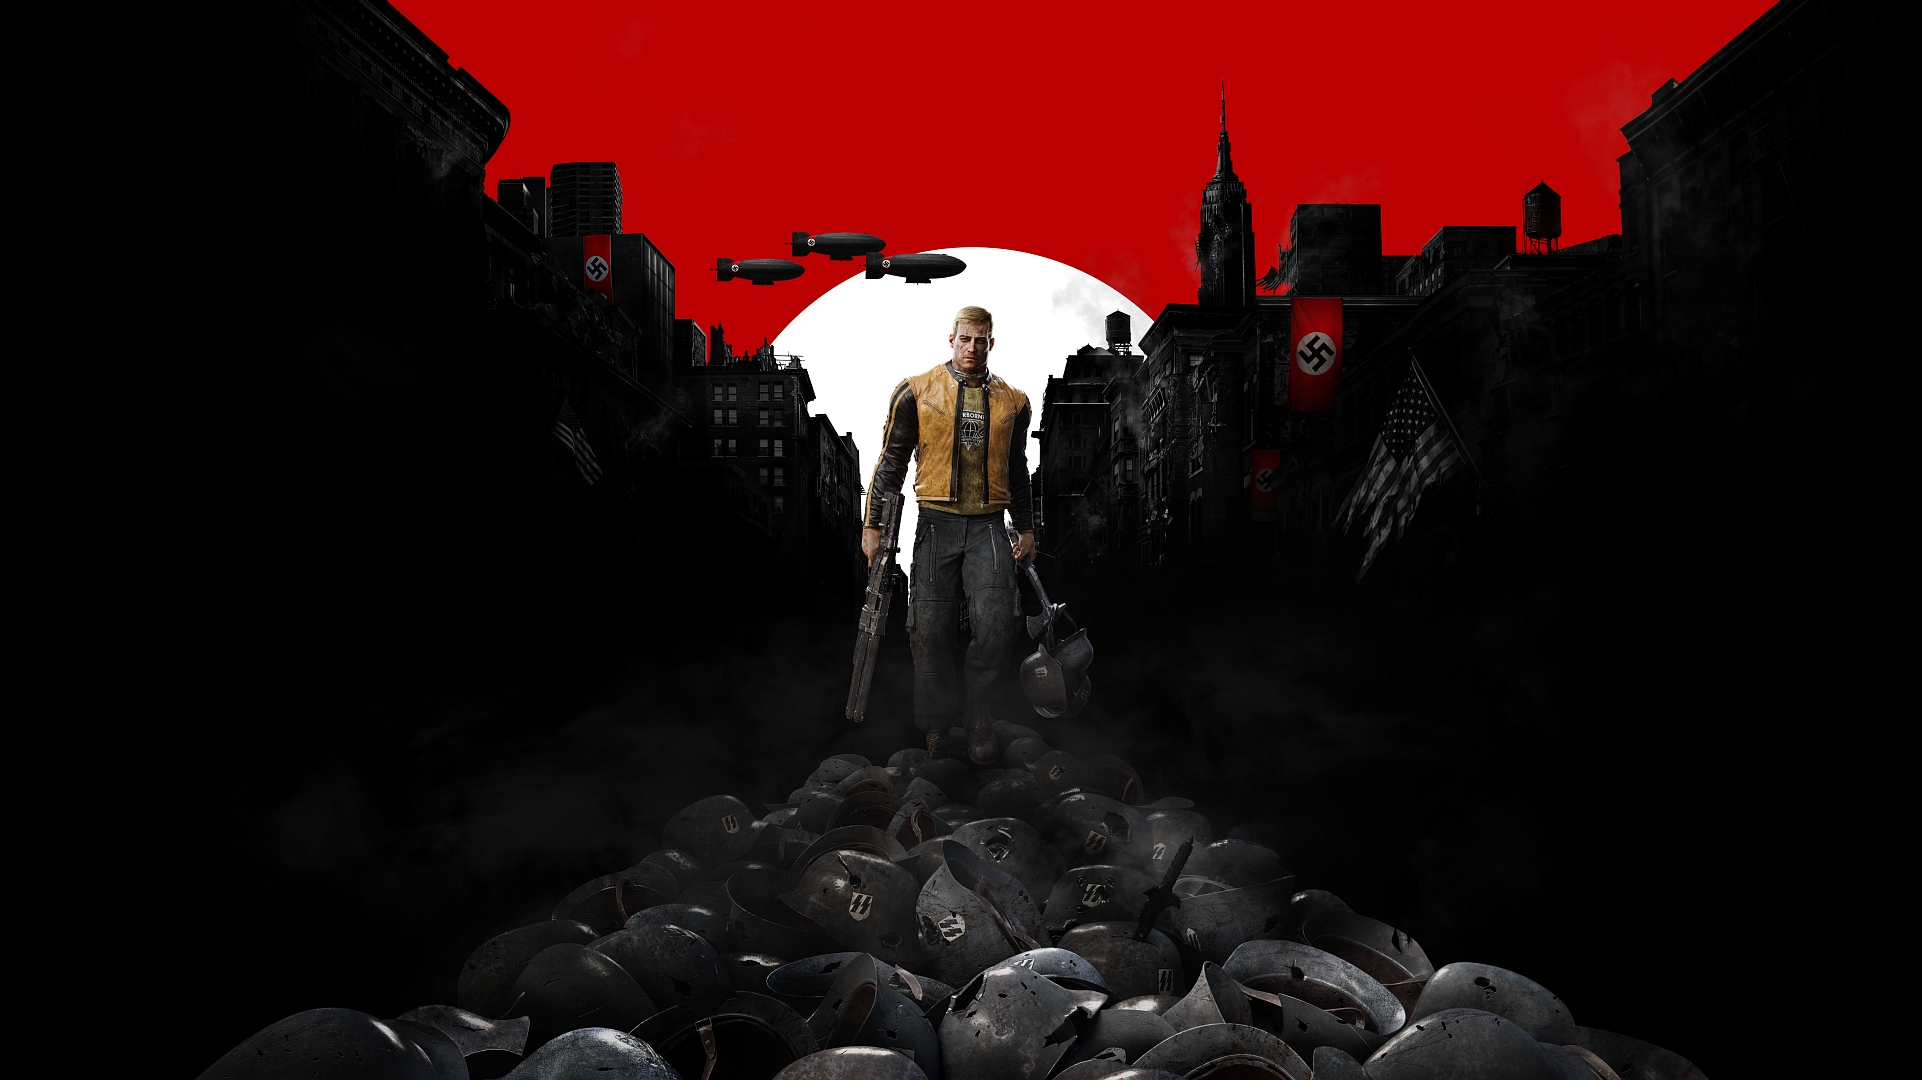 wolfenstein_2_the_new_colossus-3751391